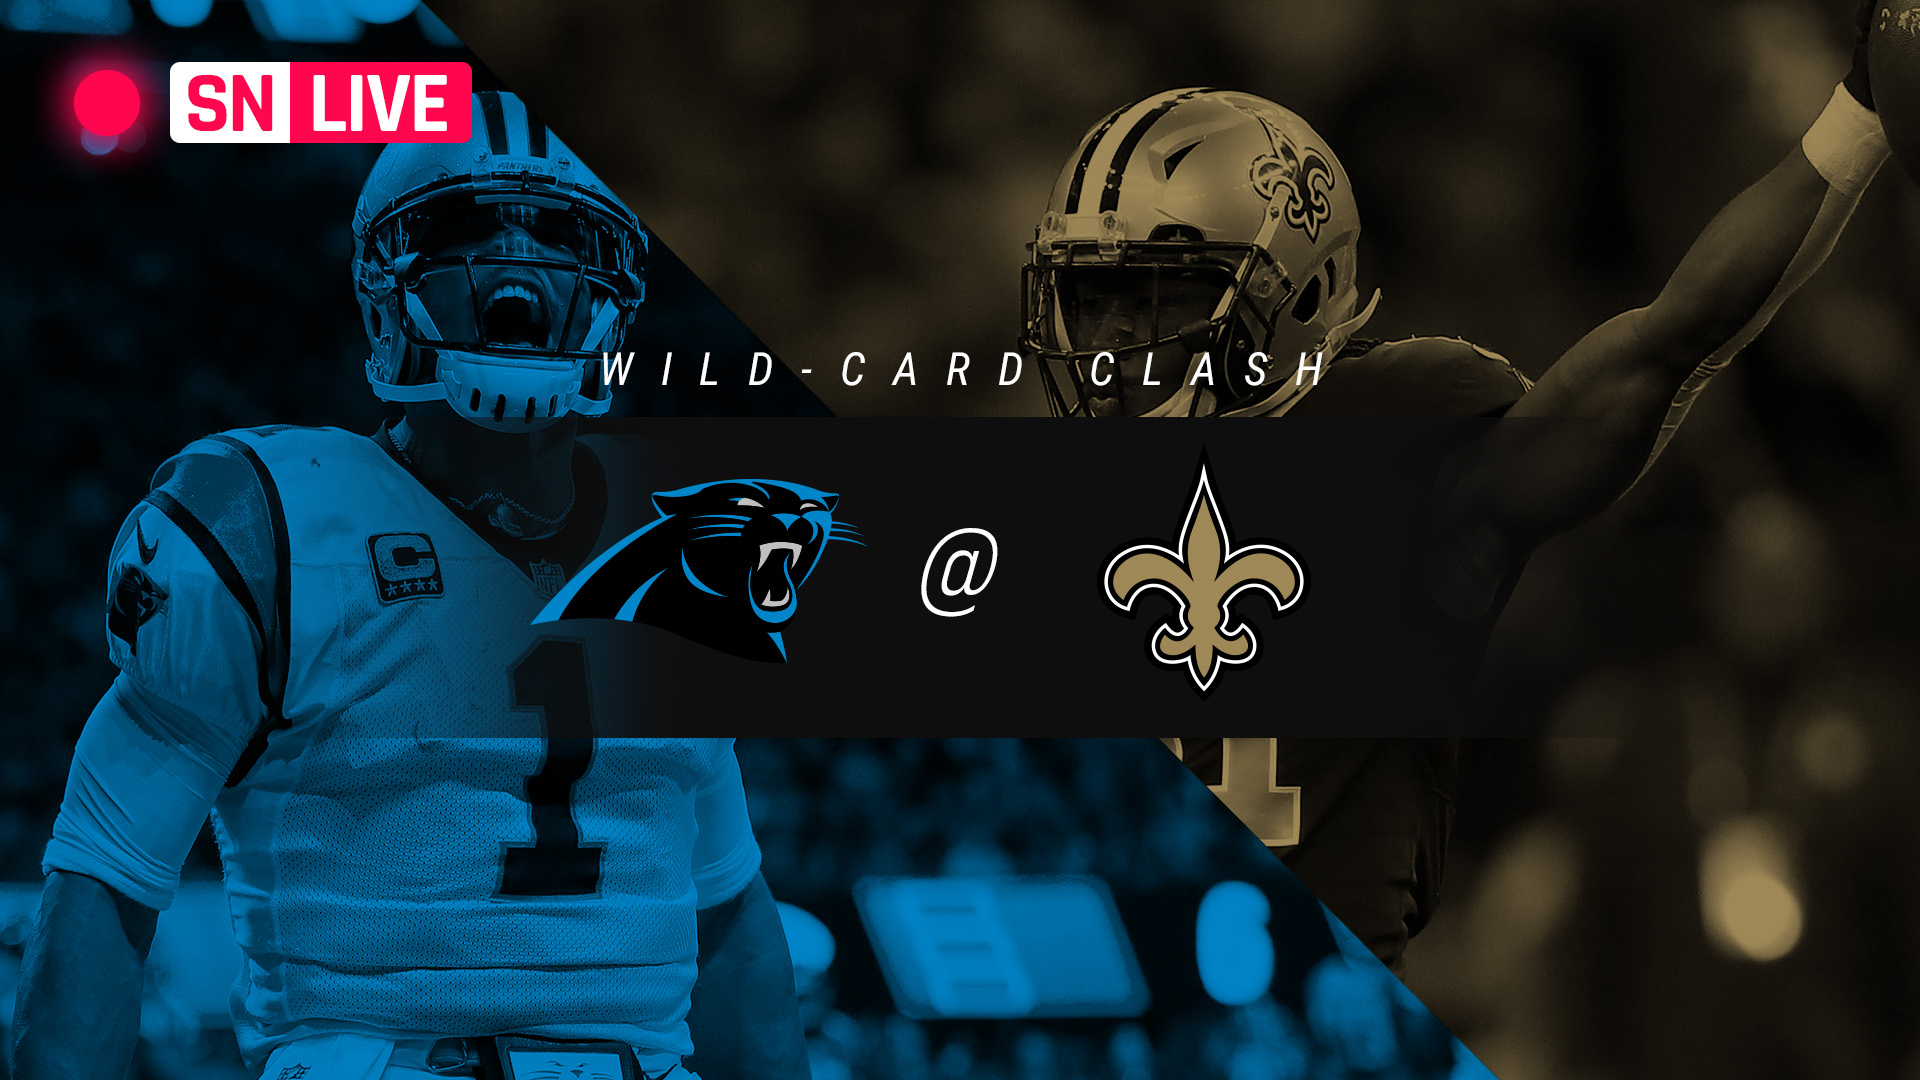 Panthers vs. Saints: Score, live updates from wild-card game in New Orleans